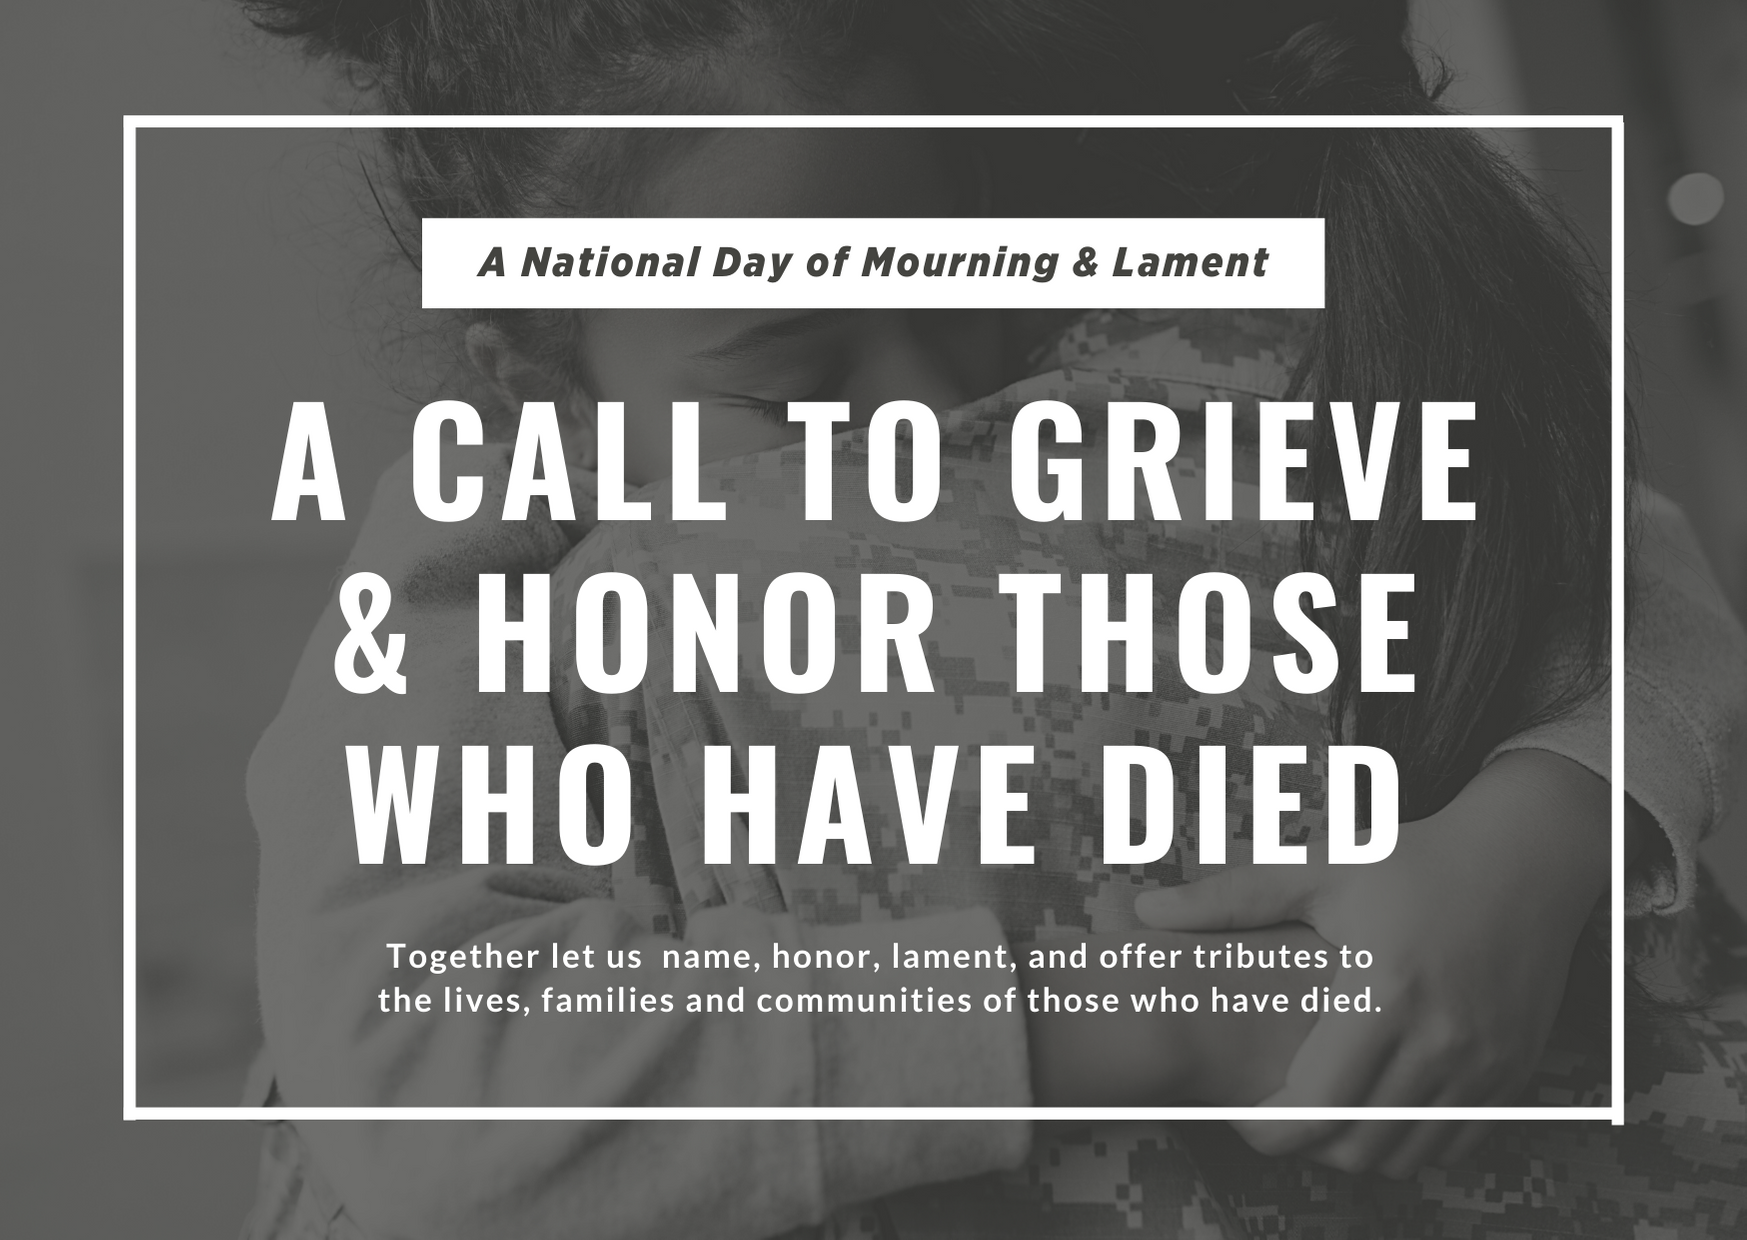 A Call to Grieve & Honor those Who Have Died